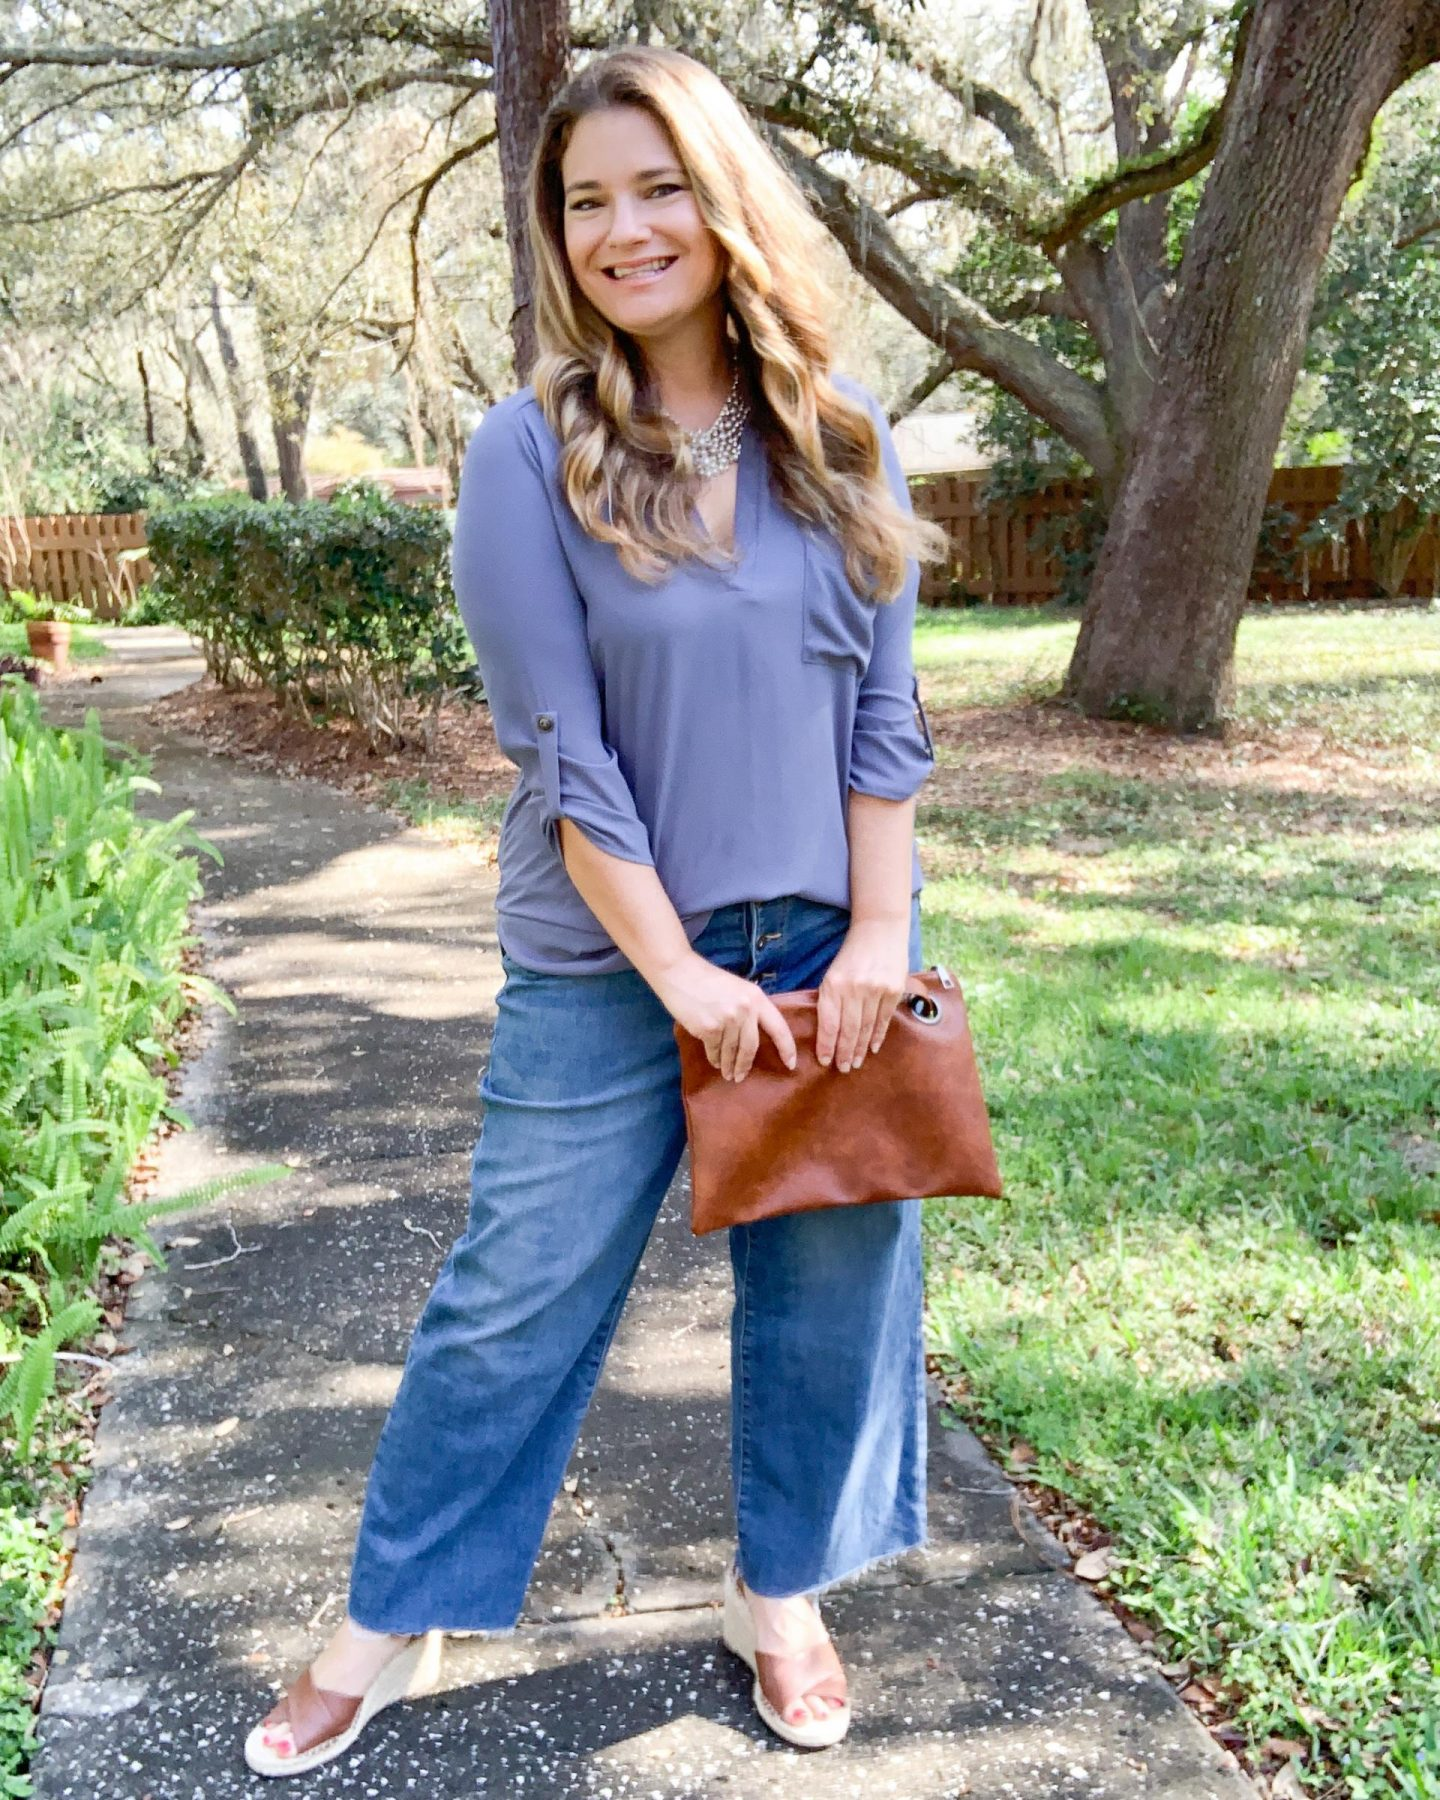 Four chic and effortless ways to wear wide leg jeans. See how to style wide leg jeans into outfits that are on trend and make an impact. Tunic, espadrilles, clutch spring outfit.